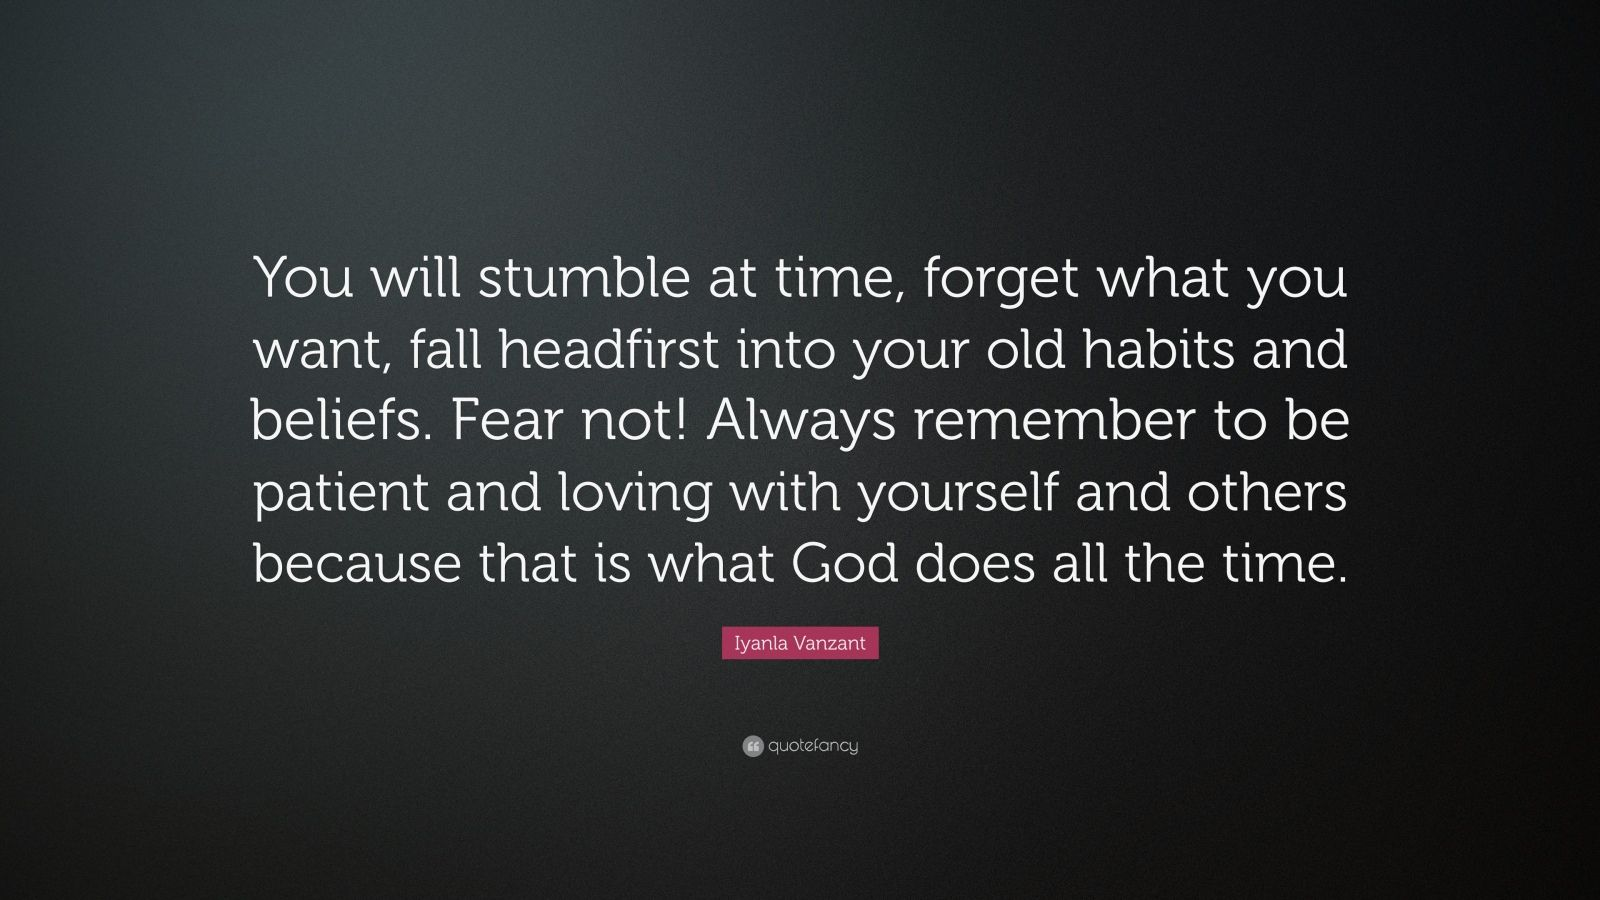 """Iyanla Vanzant Quote: """"You will stumble at time, forget what you want, fall headfirst into your old habits and beliefs. Fear not! Always remember to be patient and loving with yourself and others because that is what God does all the time."""""""